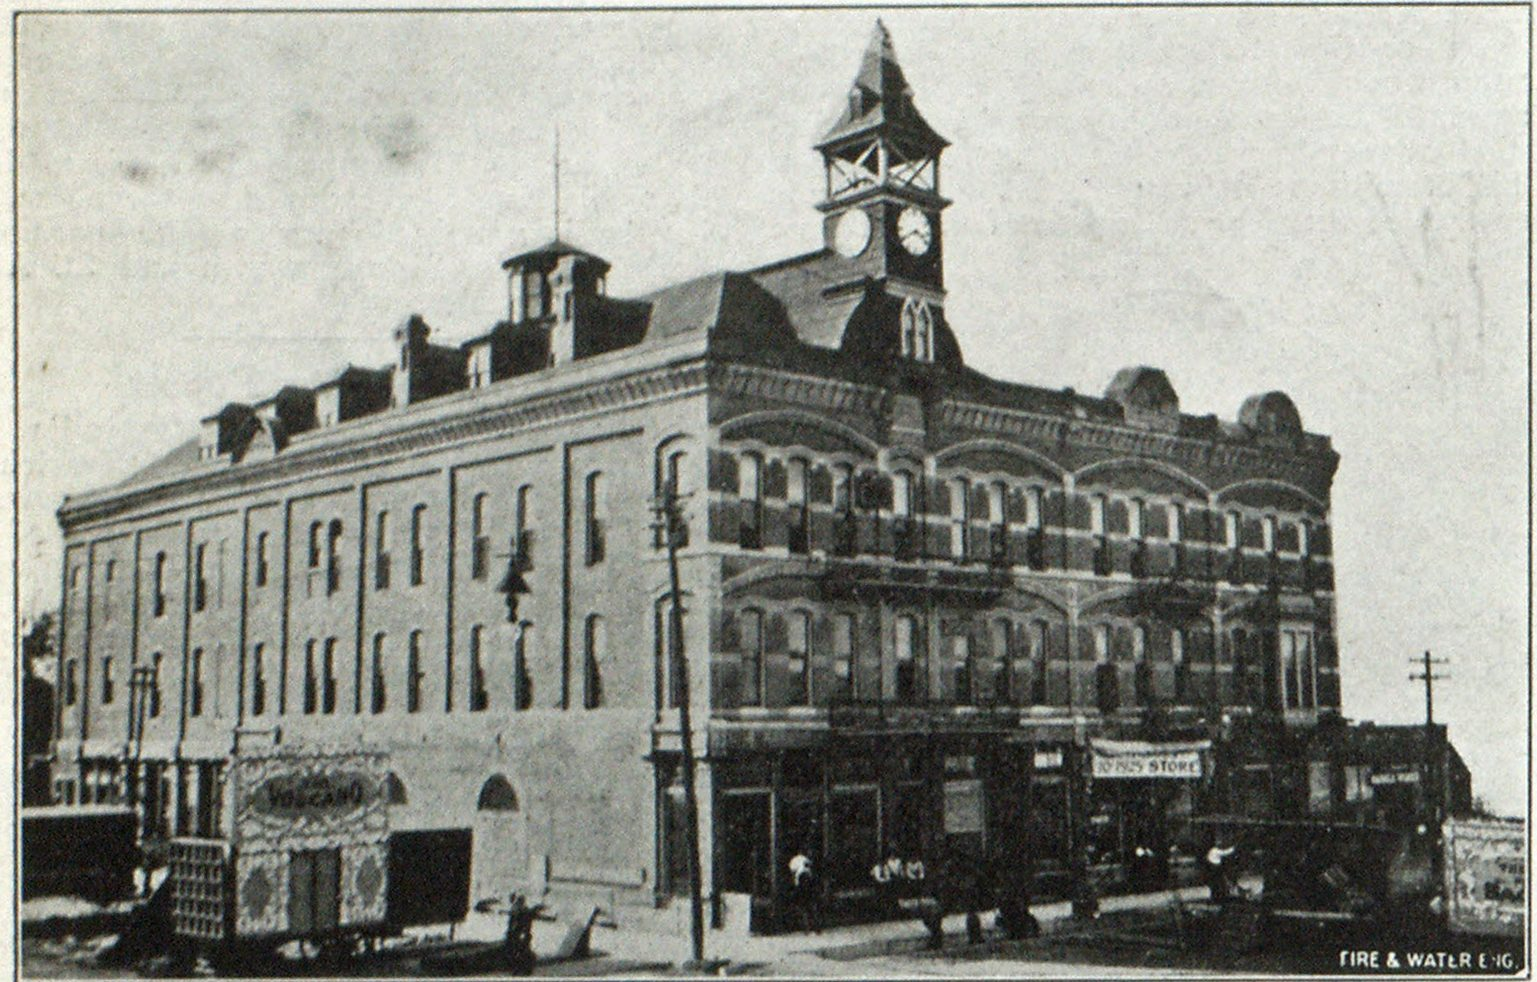 OPERA HOUSE AT NEWTON, KANS., BEFORE FIRE.